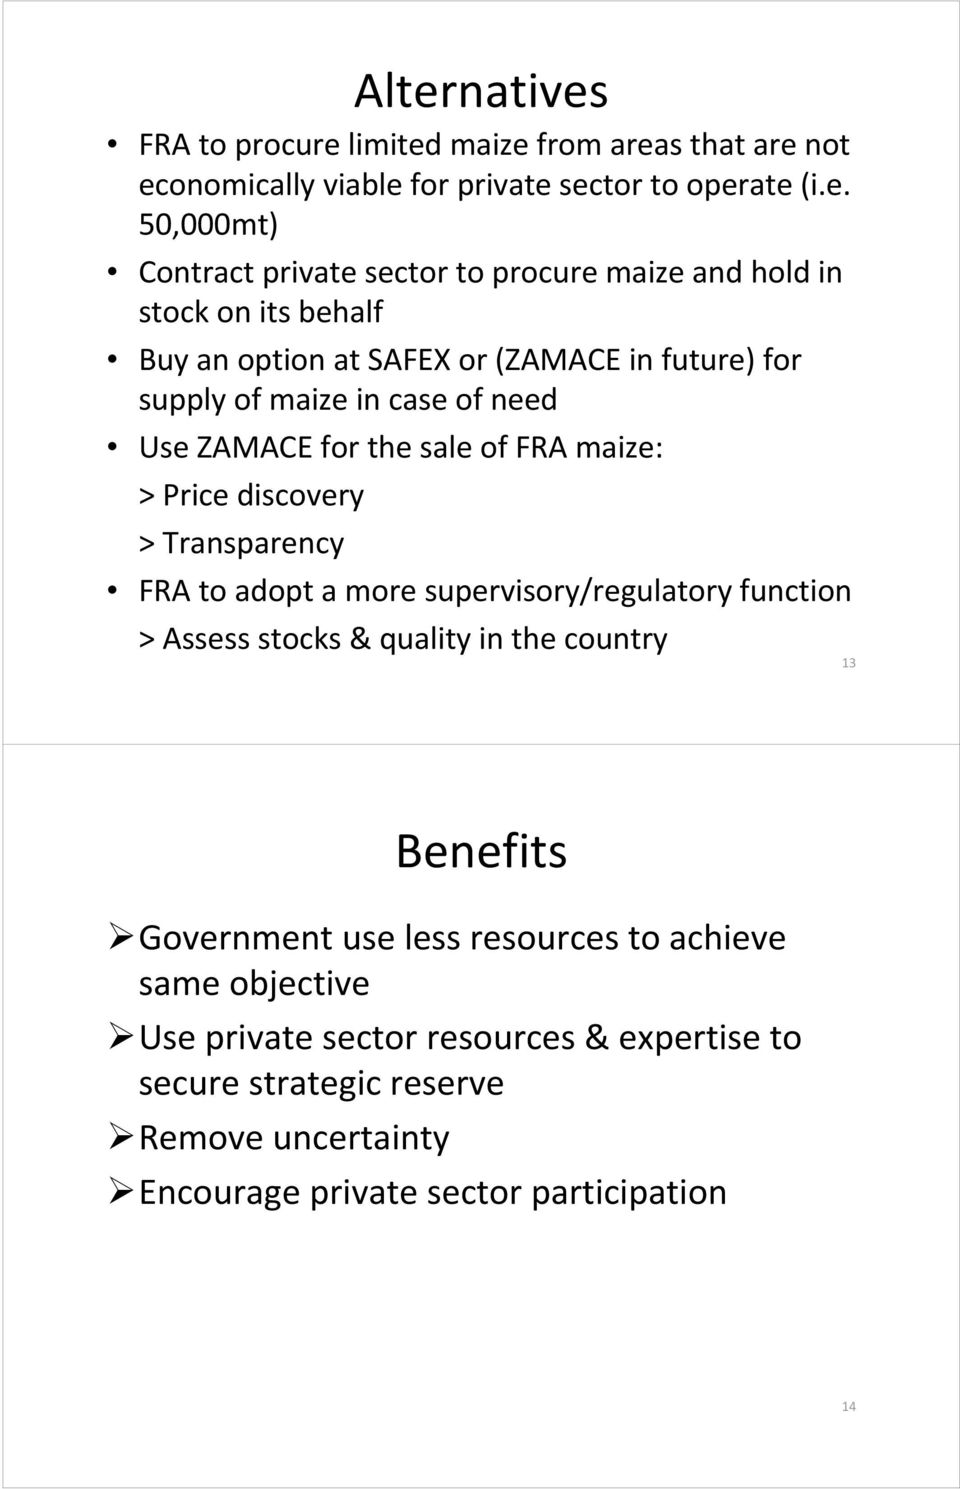 maize: > Price discovery > Transparency FRA to adopt a more supervisory/regulatory function > Assess stocks & quality in the country 13 Benefits Government use